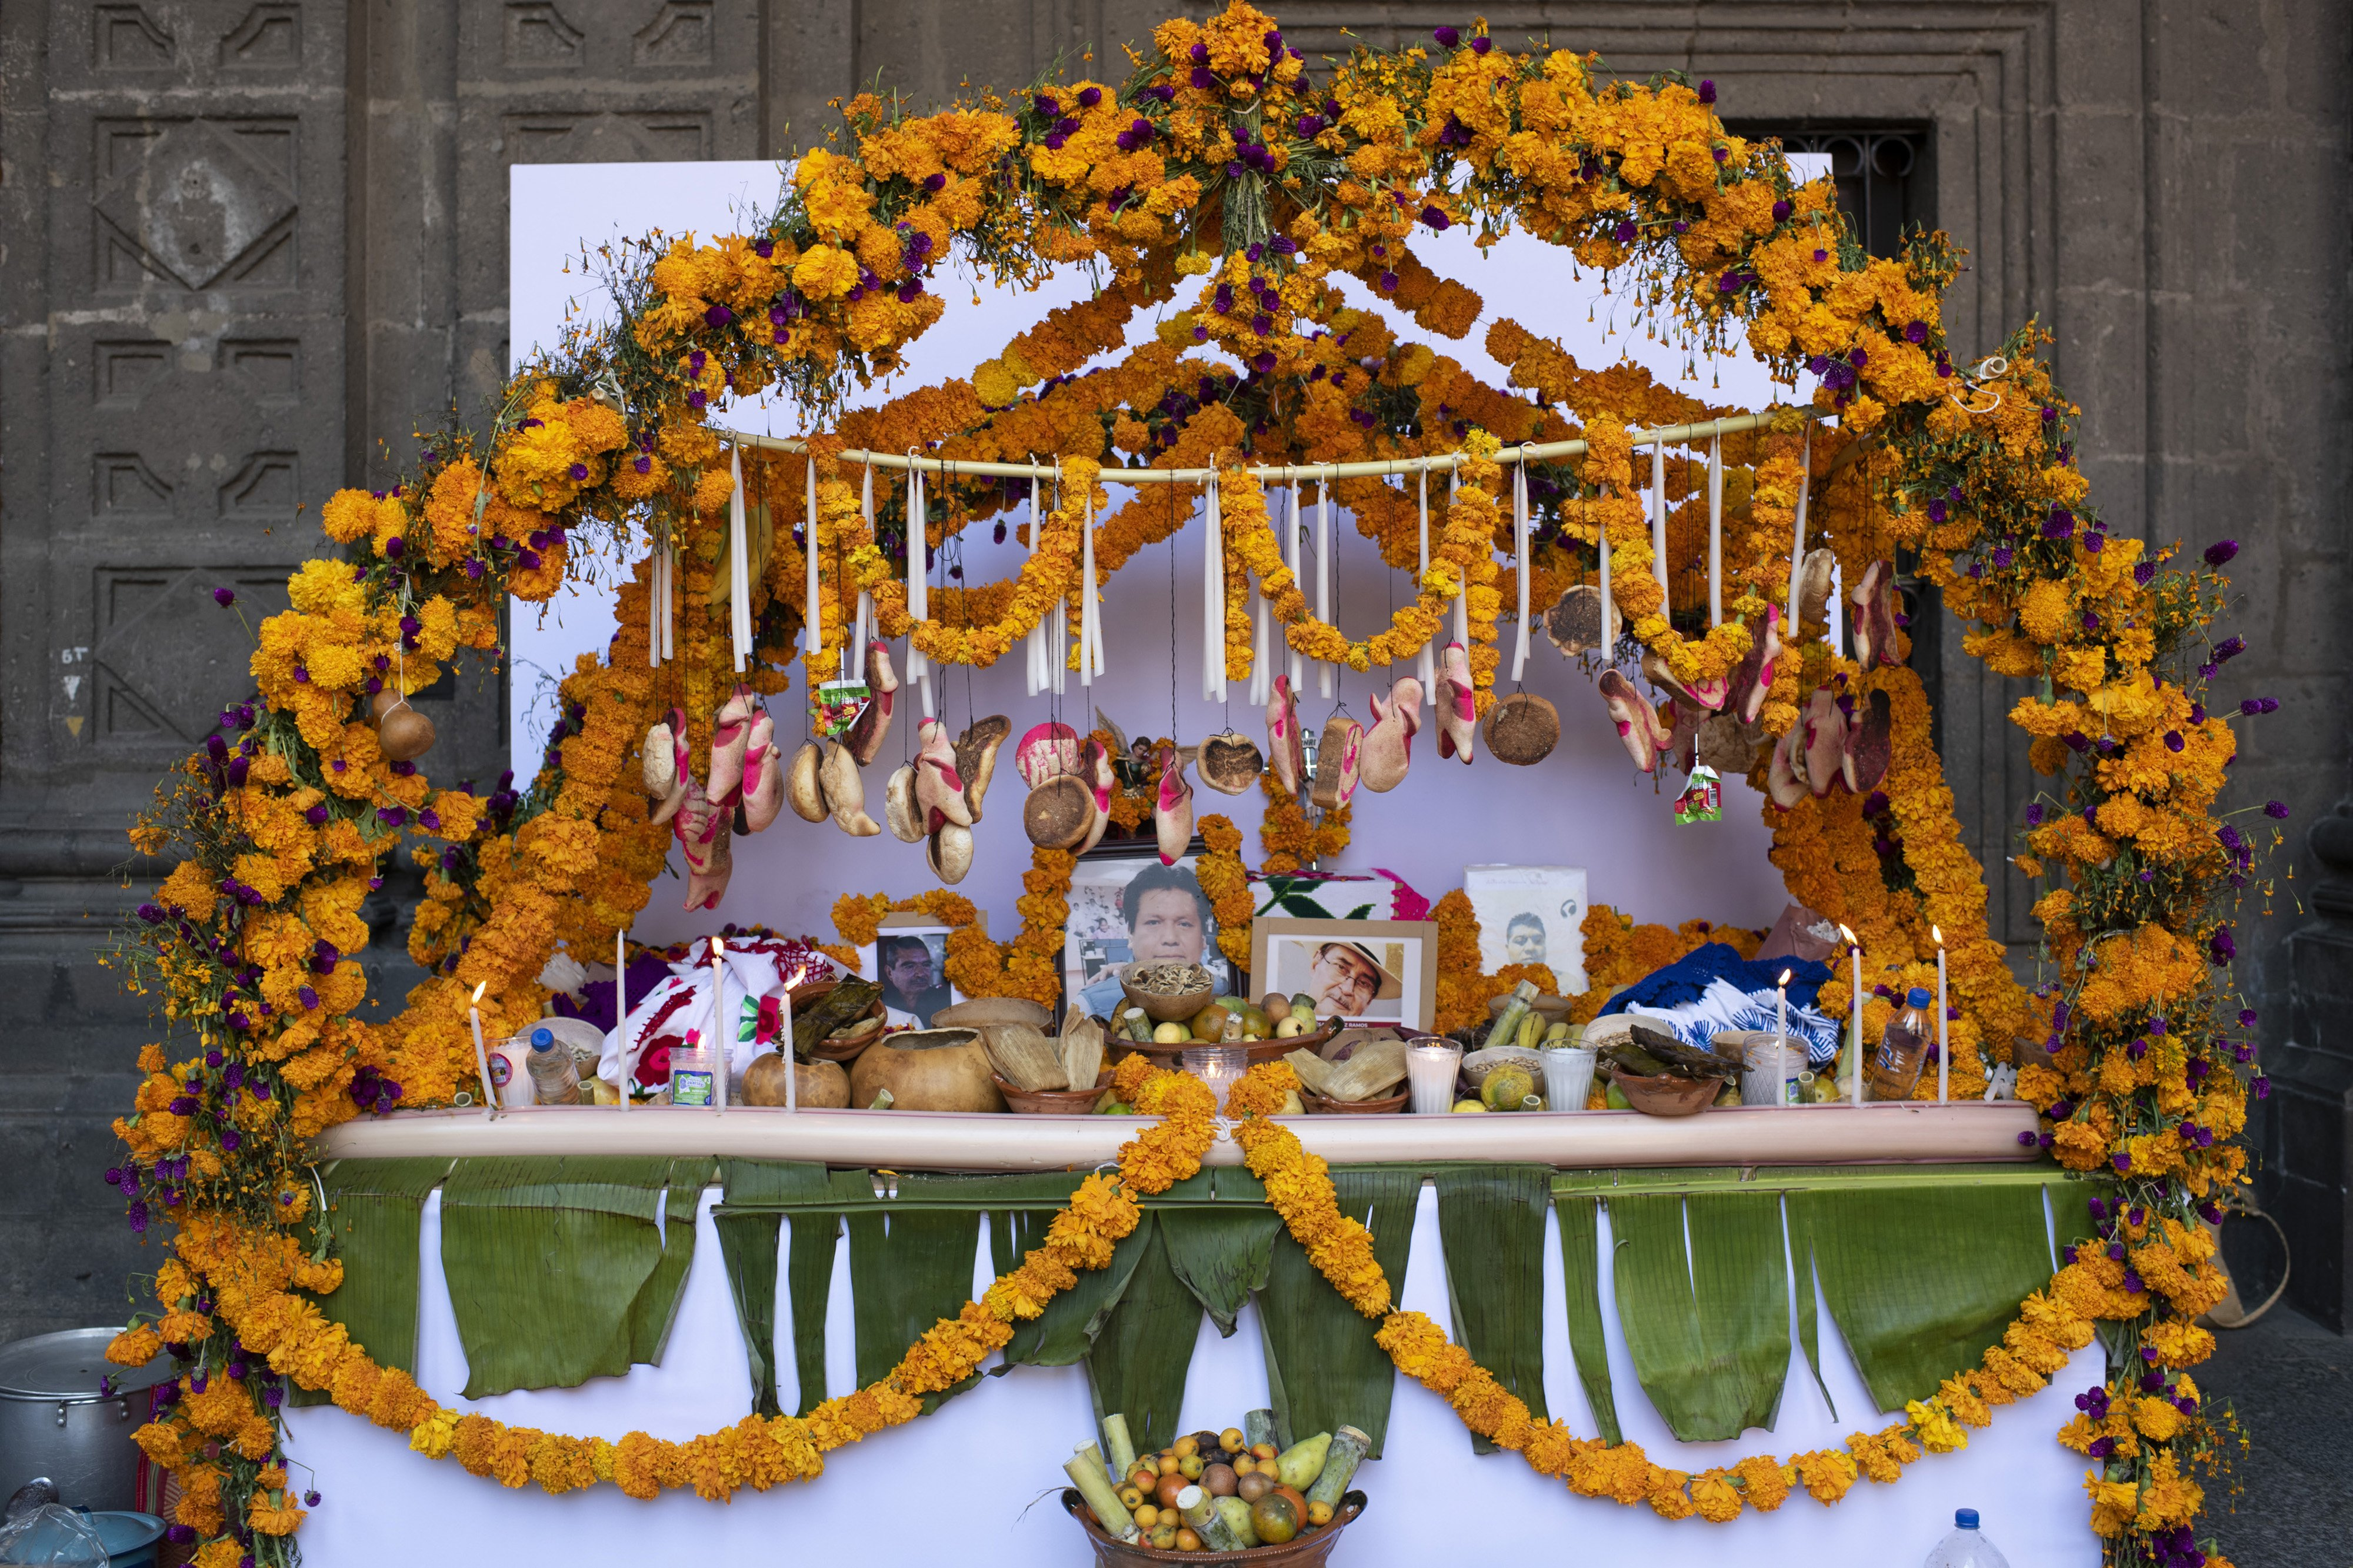 The altar of the state of Guerrero is full of symbols, the arch signifies the house, the flowers the aroma, the water, the copal, the candles are the light that illuminates the entrance and welcomes our dead, and the cross that represents the symbol that the Spaniards brought